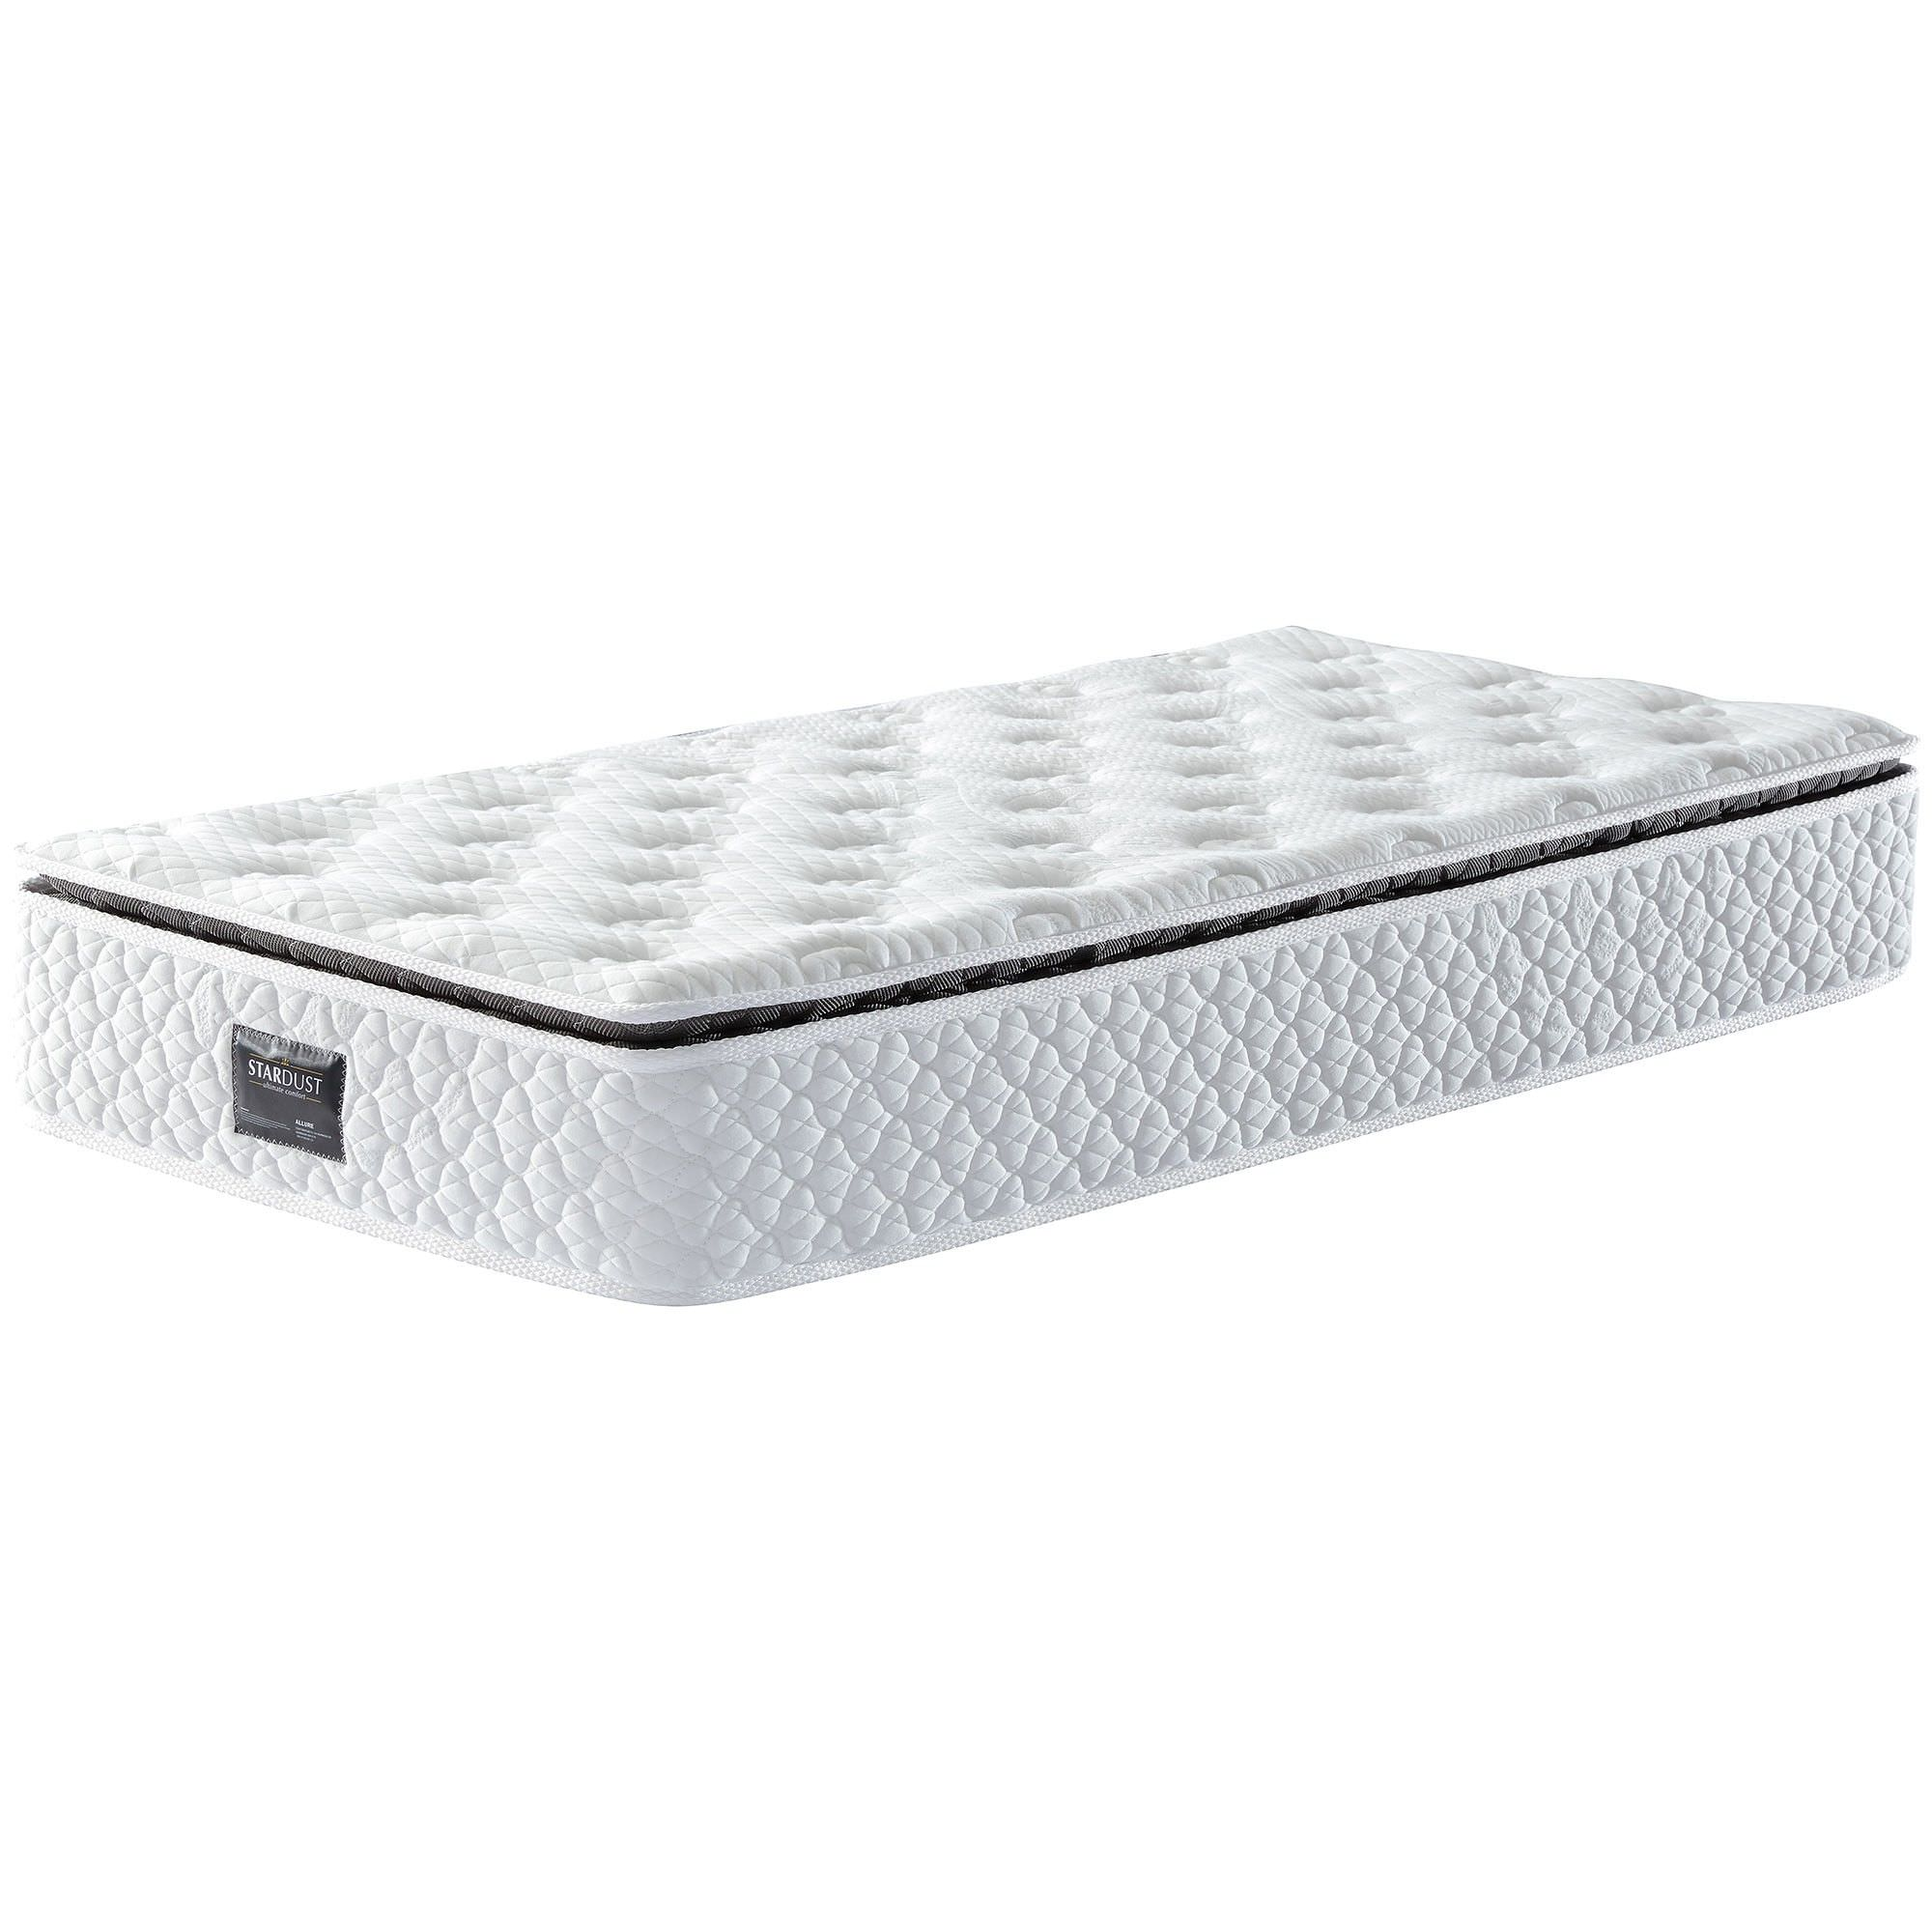 Stardust Allure Boxed Pocket Spring Medium Soft Mattress with Pillow Top, Single